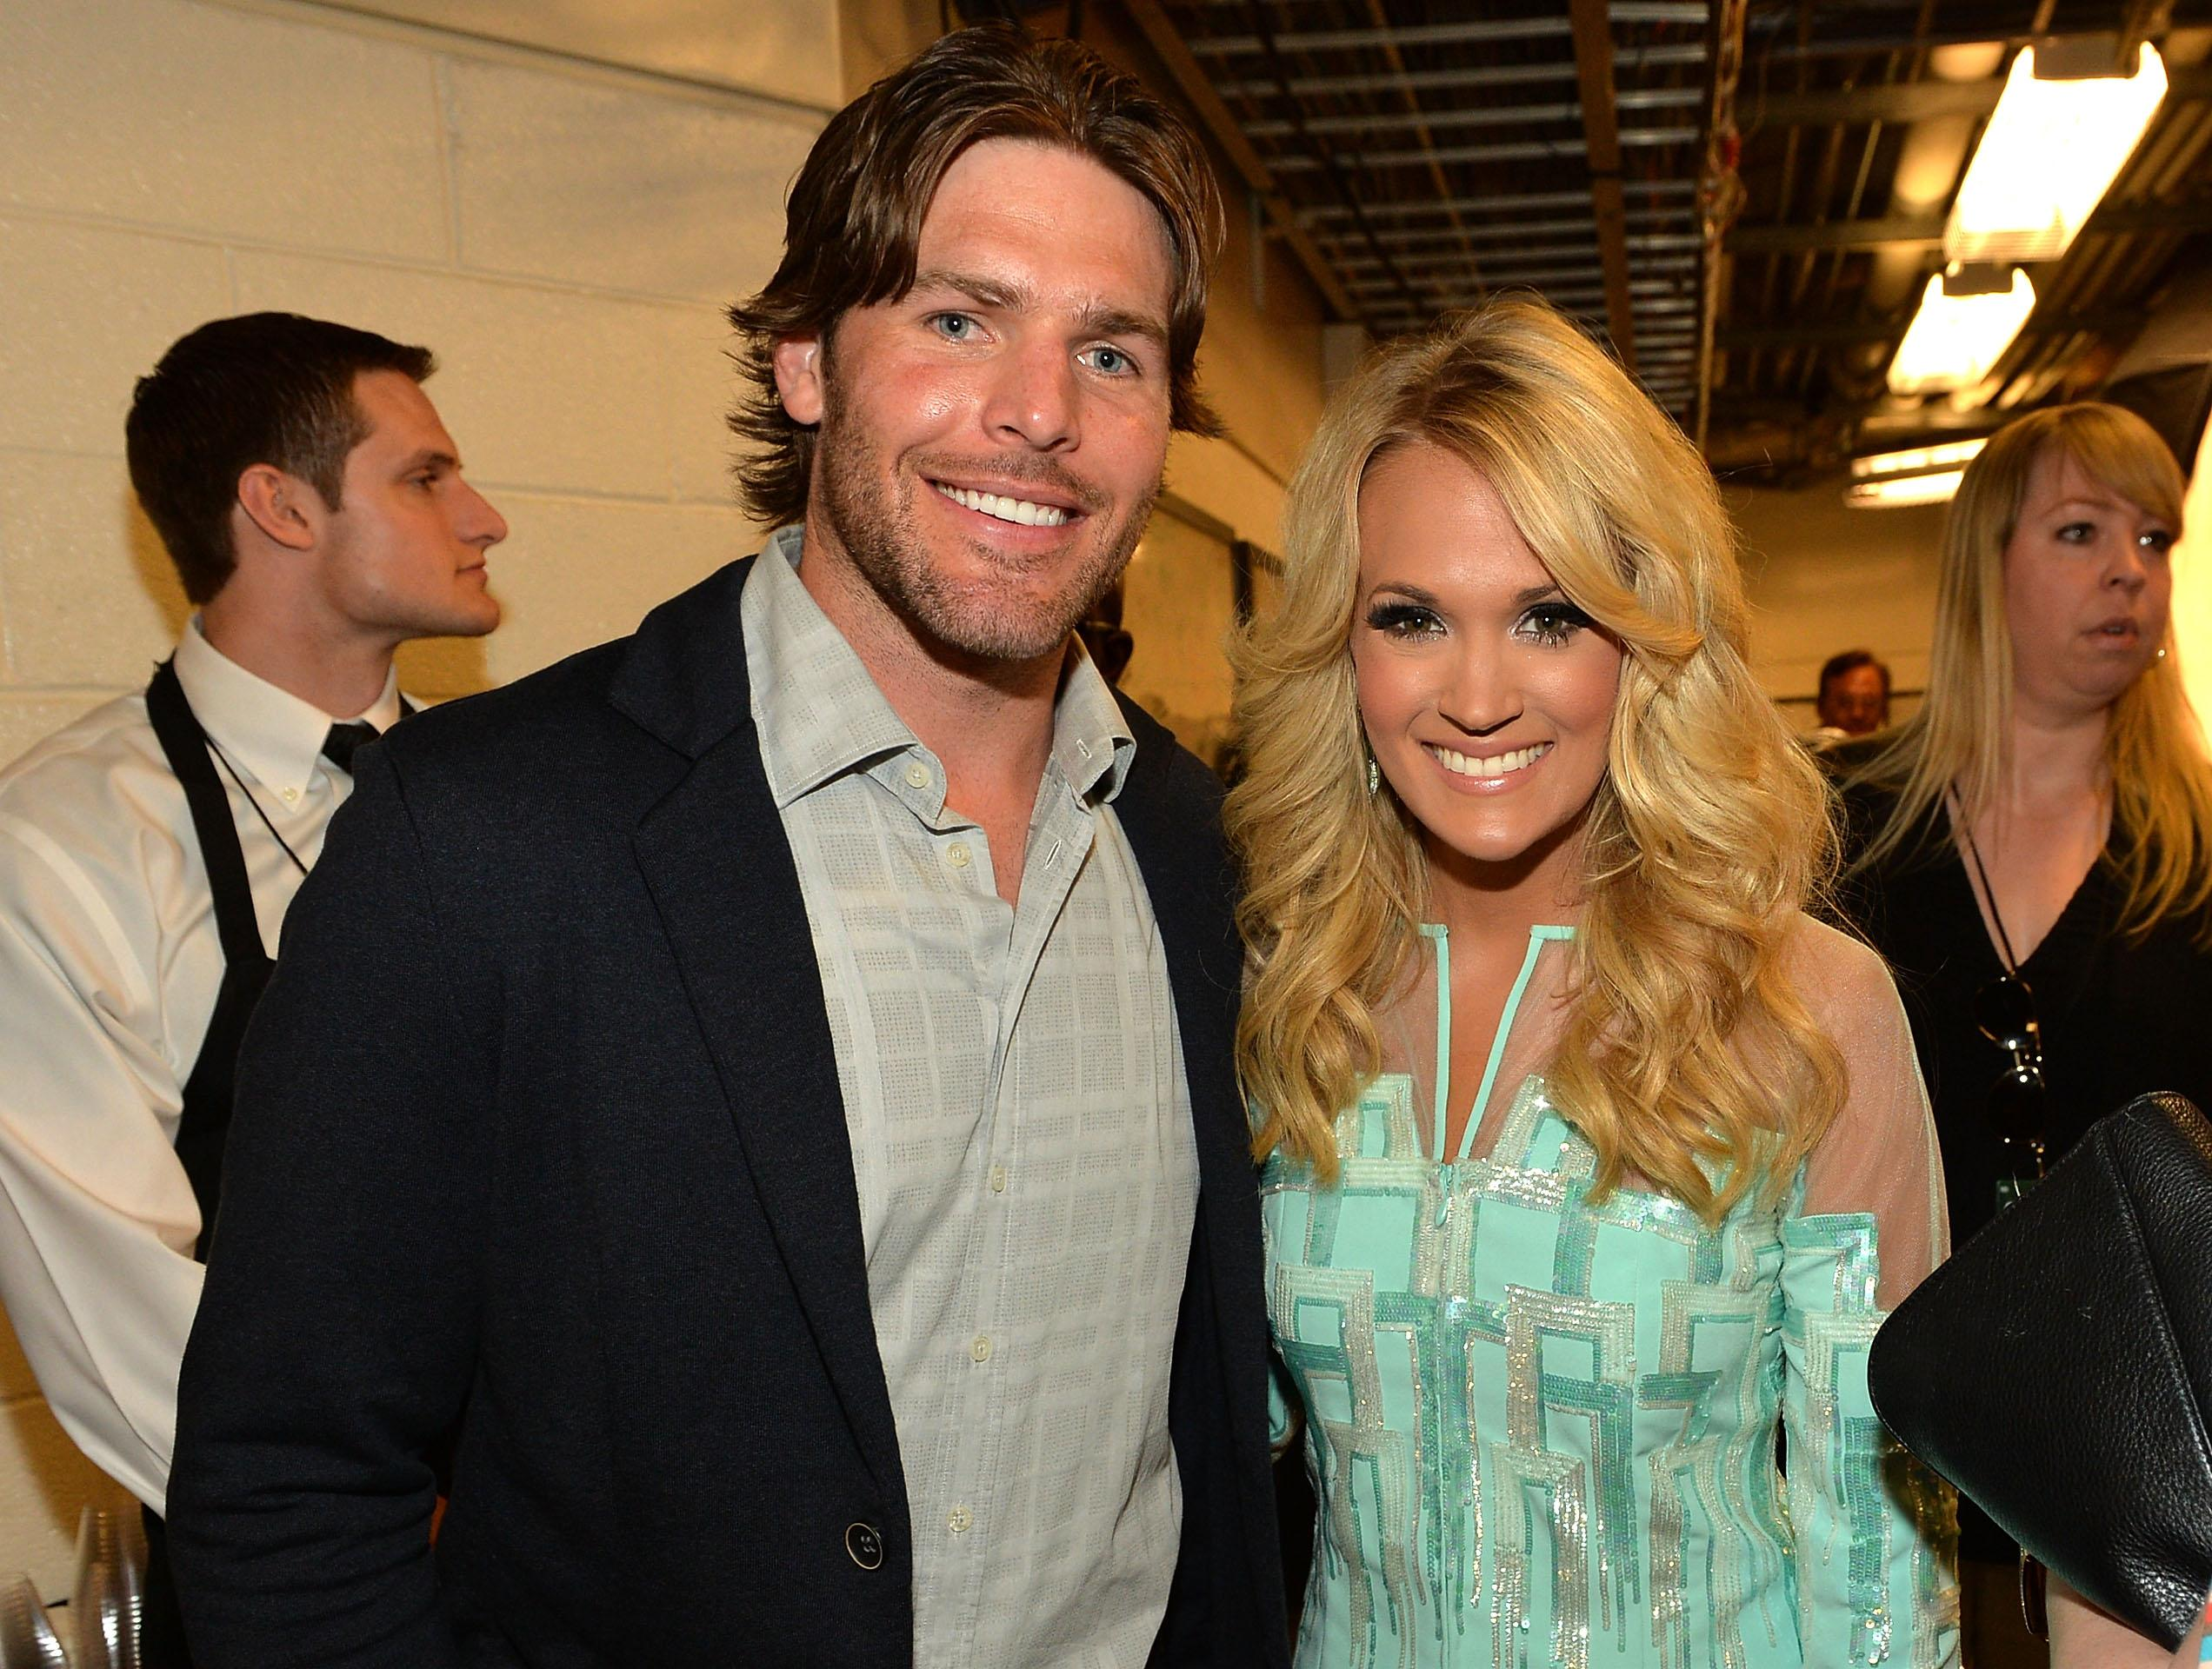 Carrie Underwood and Hubby, Mike Fisher, Welcome a Son